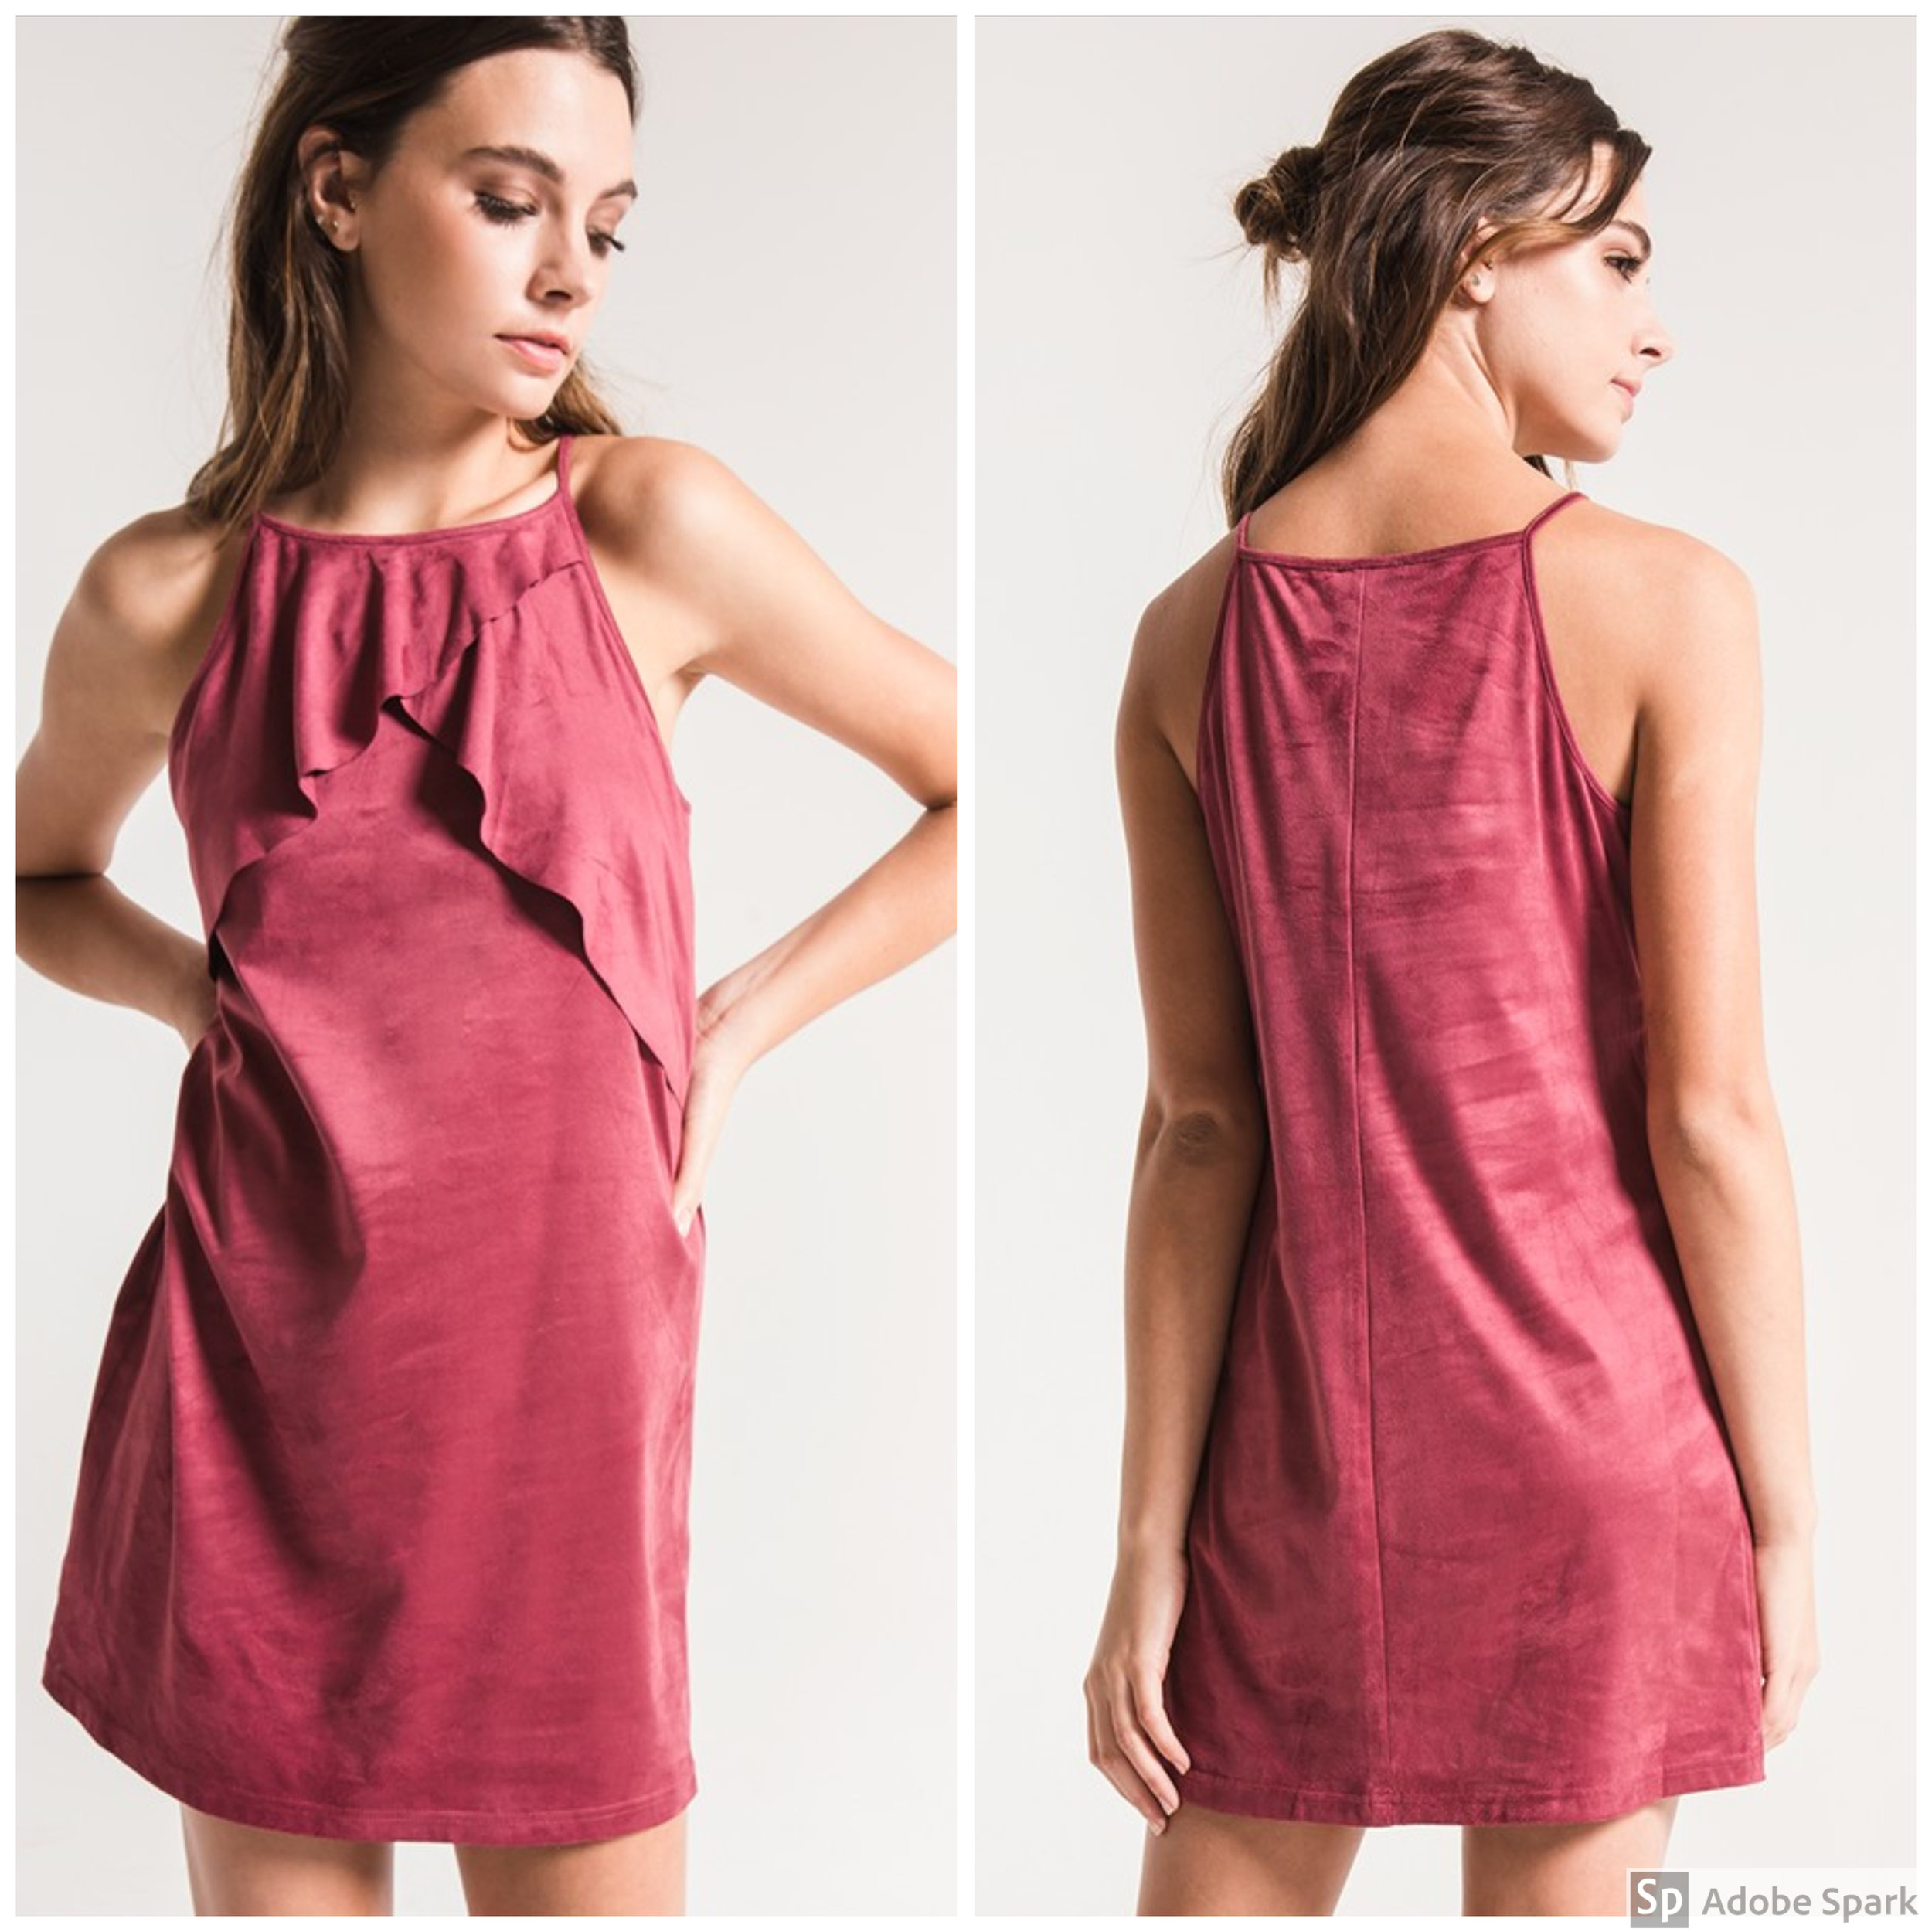 Faux Suede Dress - Spotlight Features: high neckline accentuated with ruffle detail across the frontWhy You'll Love It:This dress is cute now with open toe sandals or wedges, and it will be just as cute once it cools off underneath a light jacket & some ankle booties!